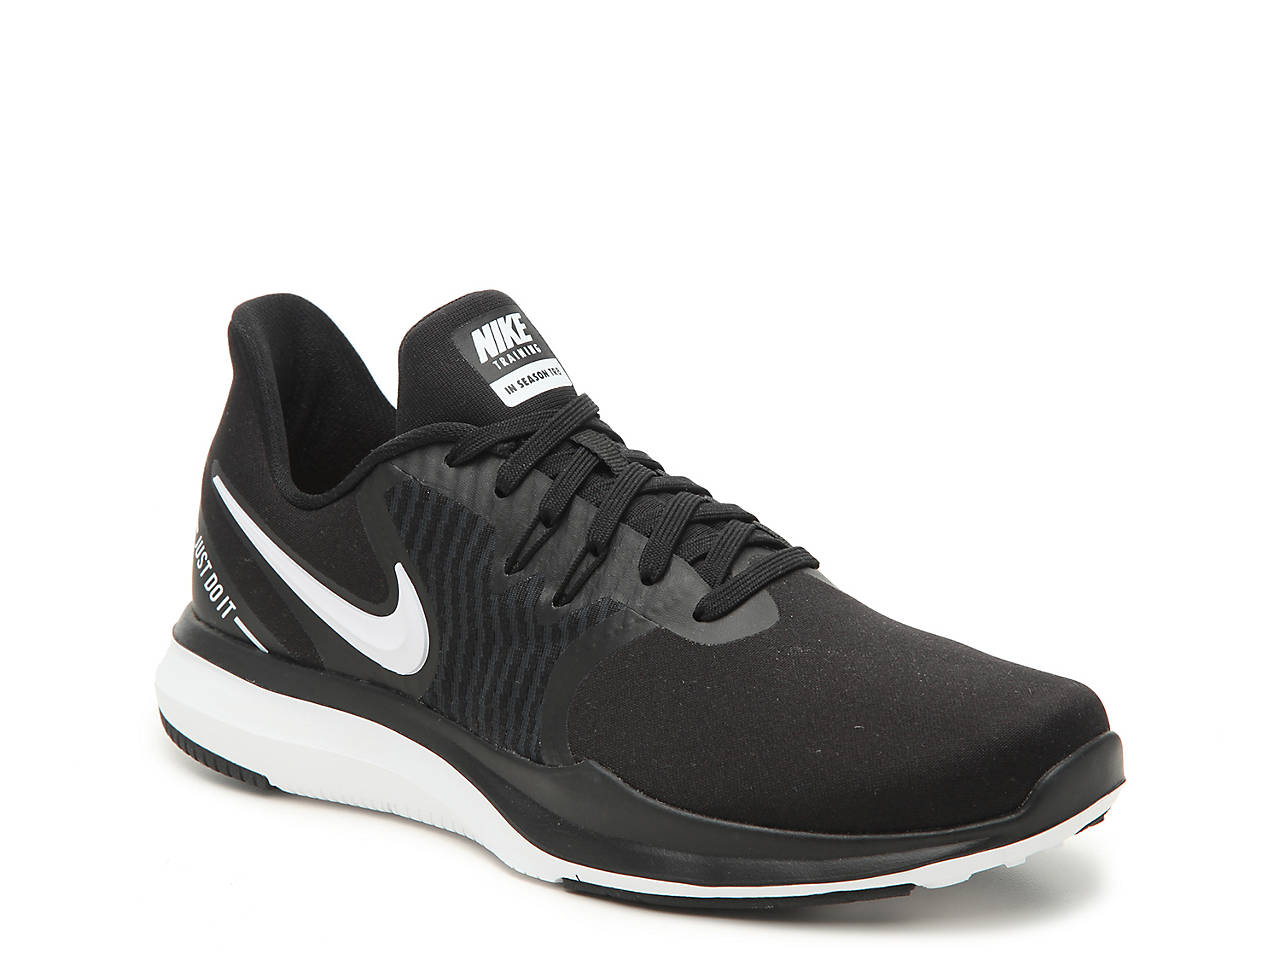 a8321eea15553 Nike In Season TR 8 Lightweight Training Shoe - Women's Women's ...